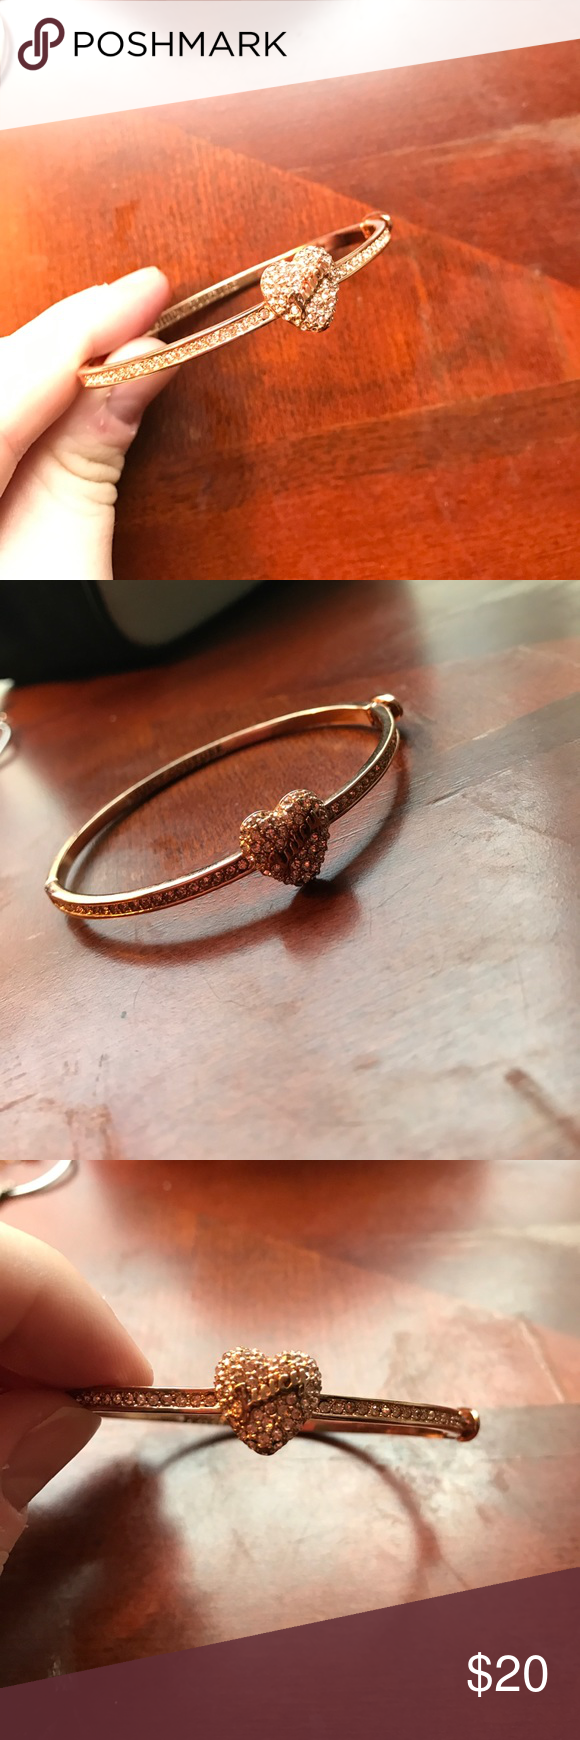 Rose gold juicy bangle Juicy couture jewelry Juicy couture and Bangle